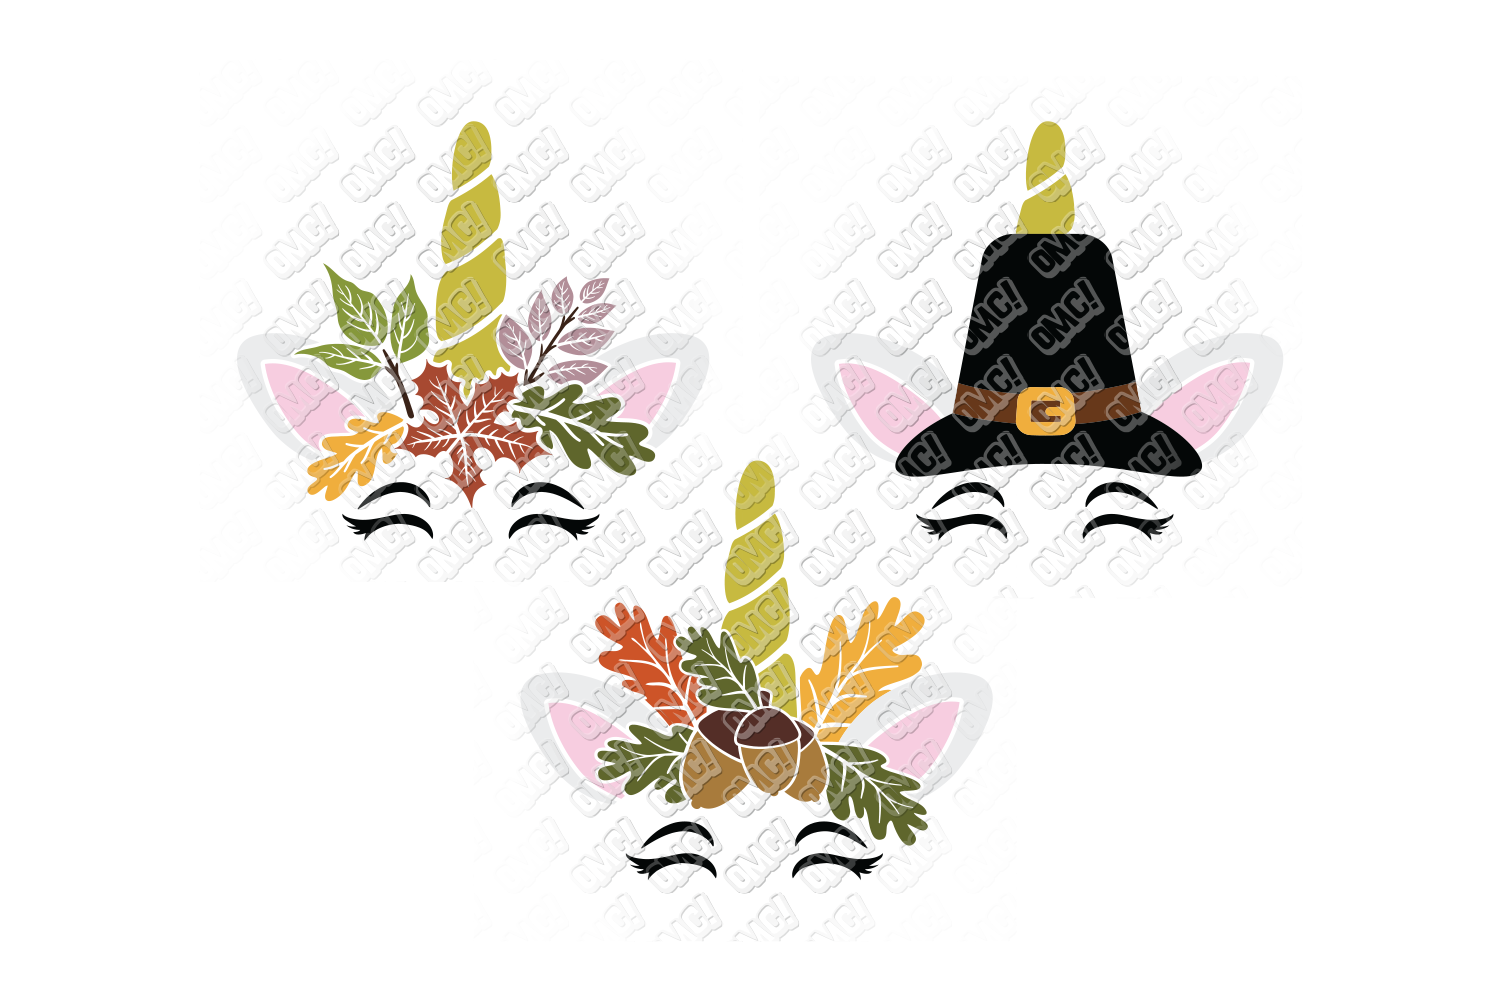 Unicorn Thanksgiving SVG Pumpkin in SVG, DXF, PNG, EPS, JPEG example image 2